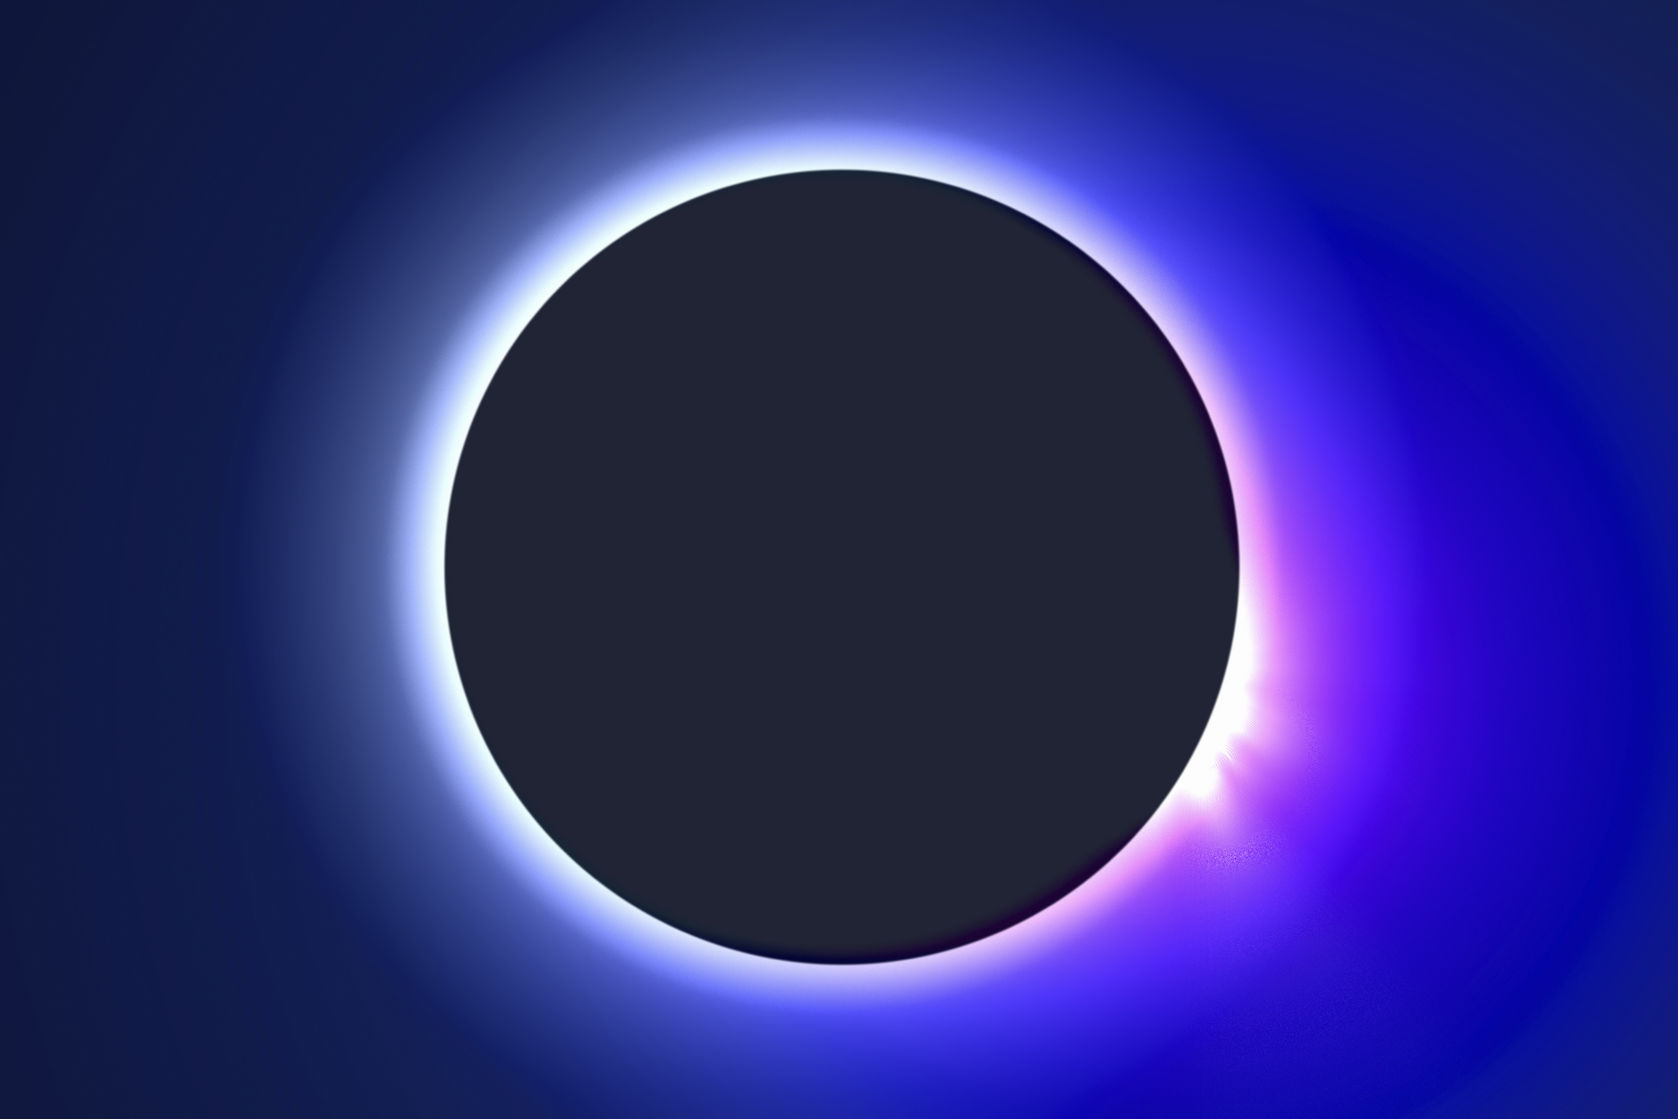 Summer of Eclipses! Eclipse Forecast - The eclipse is the most powerful event in astrology. And we had a rare eclipse sandwich in 2018: Solar/Lunar/Solar! These Cancer, Aquarius and Leo eclipses called us to vastly transform our notions of home, land, families, mothers, elders, children, creativity, government, society and our relationship to the unknown.Altogether there are about eight activations of these eclipses for the next 18 months, where the transformation occurs!The July 12th eclipse will most impact those of us with planets or points at 15 to 18 degrees of Cancer, Capricorn, Aries and Libra. The July 27th eclipse highlights one to 7 degrees of Leo, Aquarius, Scorpio and Taurus. The August 11th eclipse focuses on 15 degrees to 21 degrees of those same signs. Wherever these land in your chart is where the Universe is calling you to transform your life.